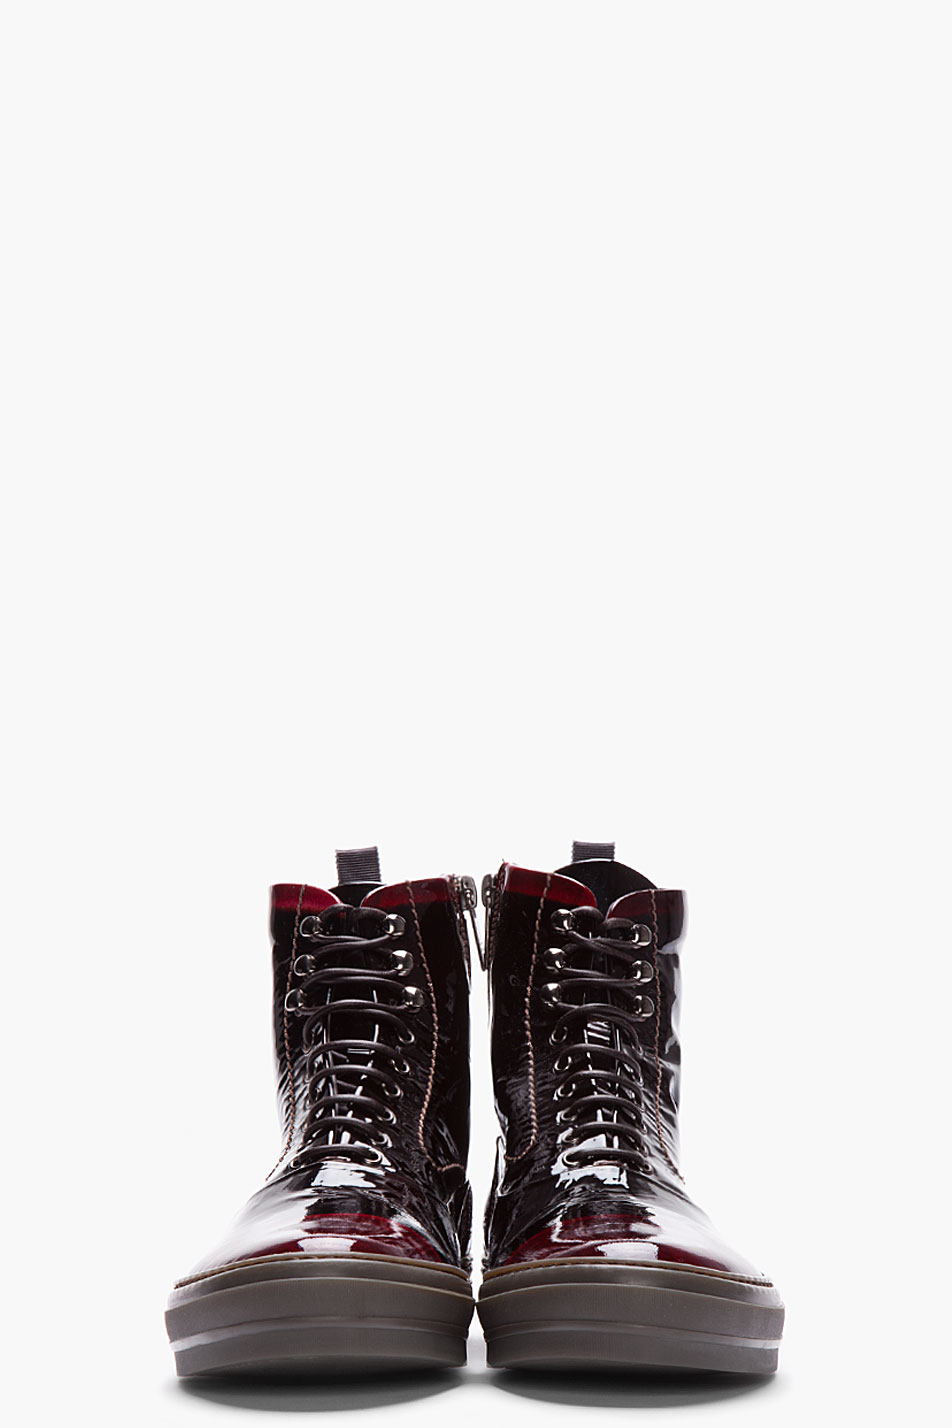 Lyst Alexander Mcqueen Black And Burgundy Patent Leather